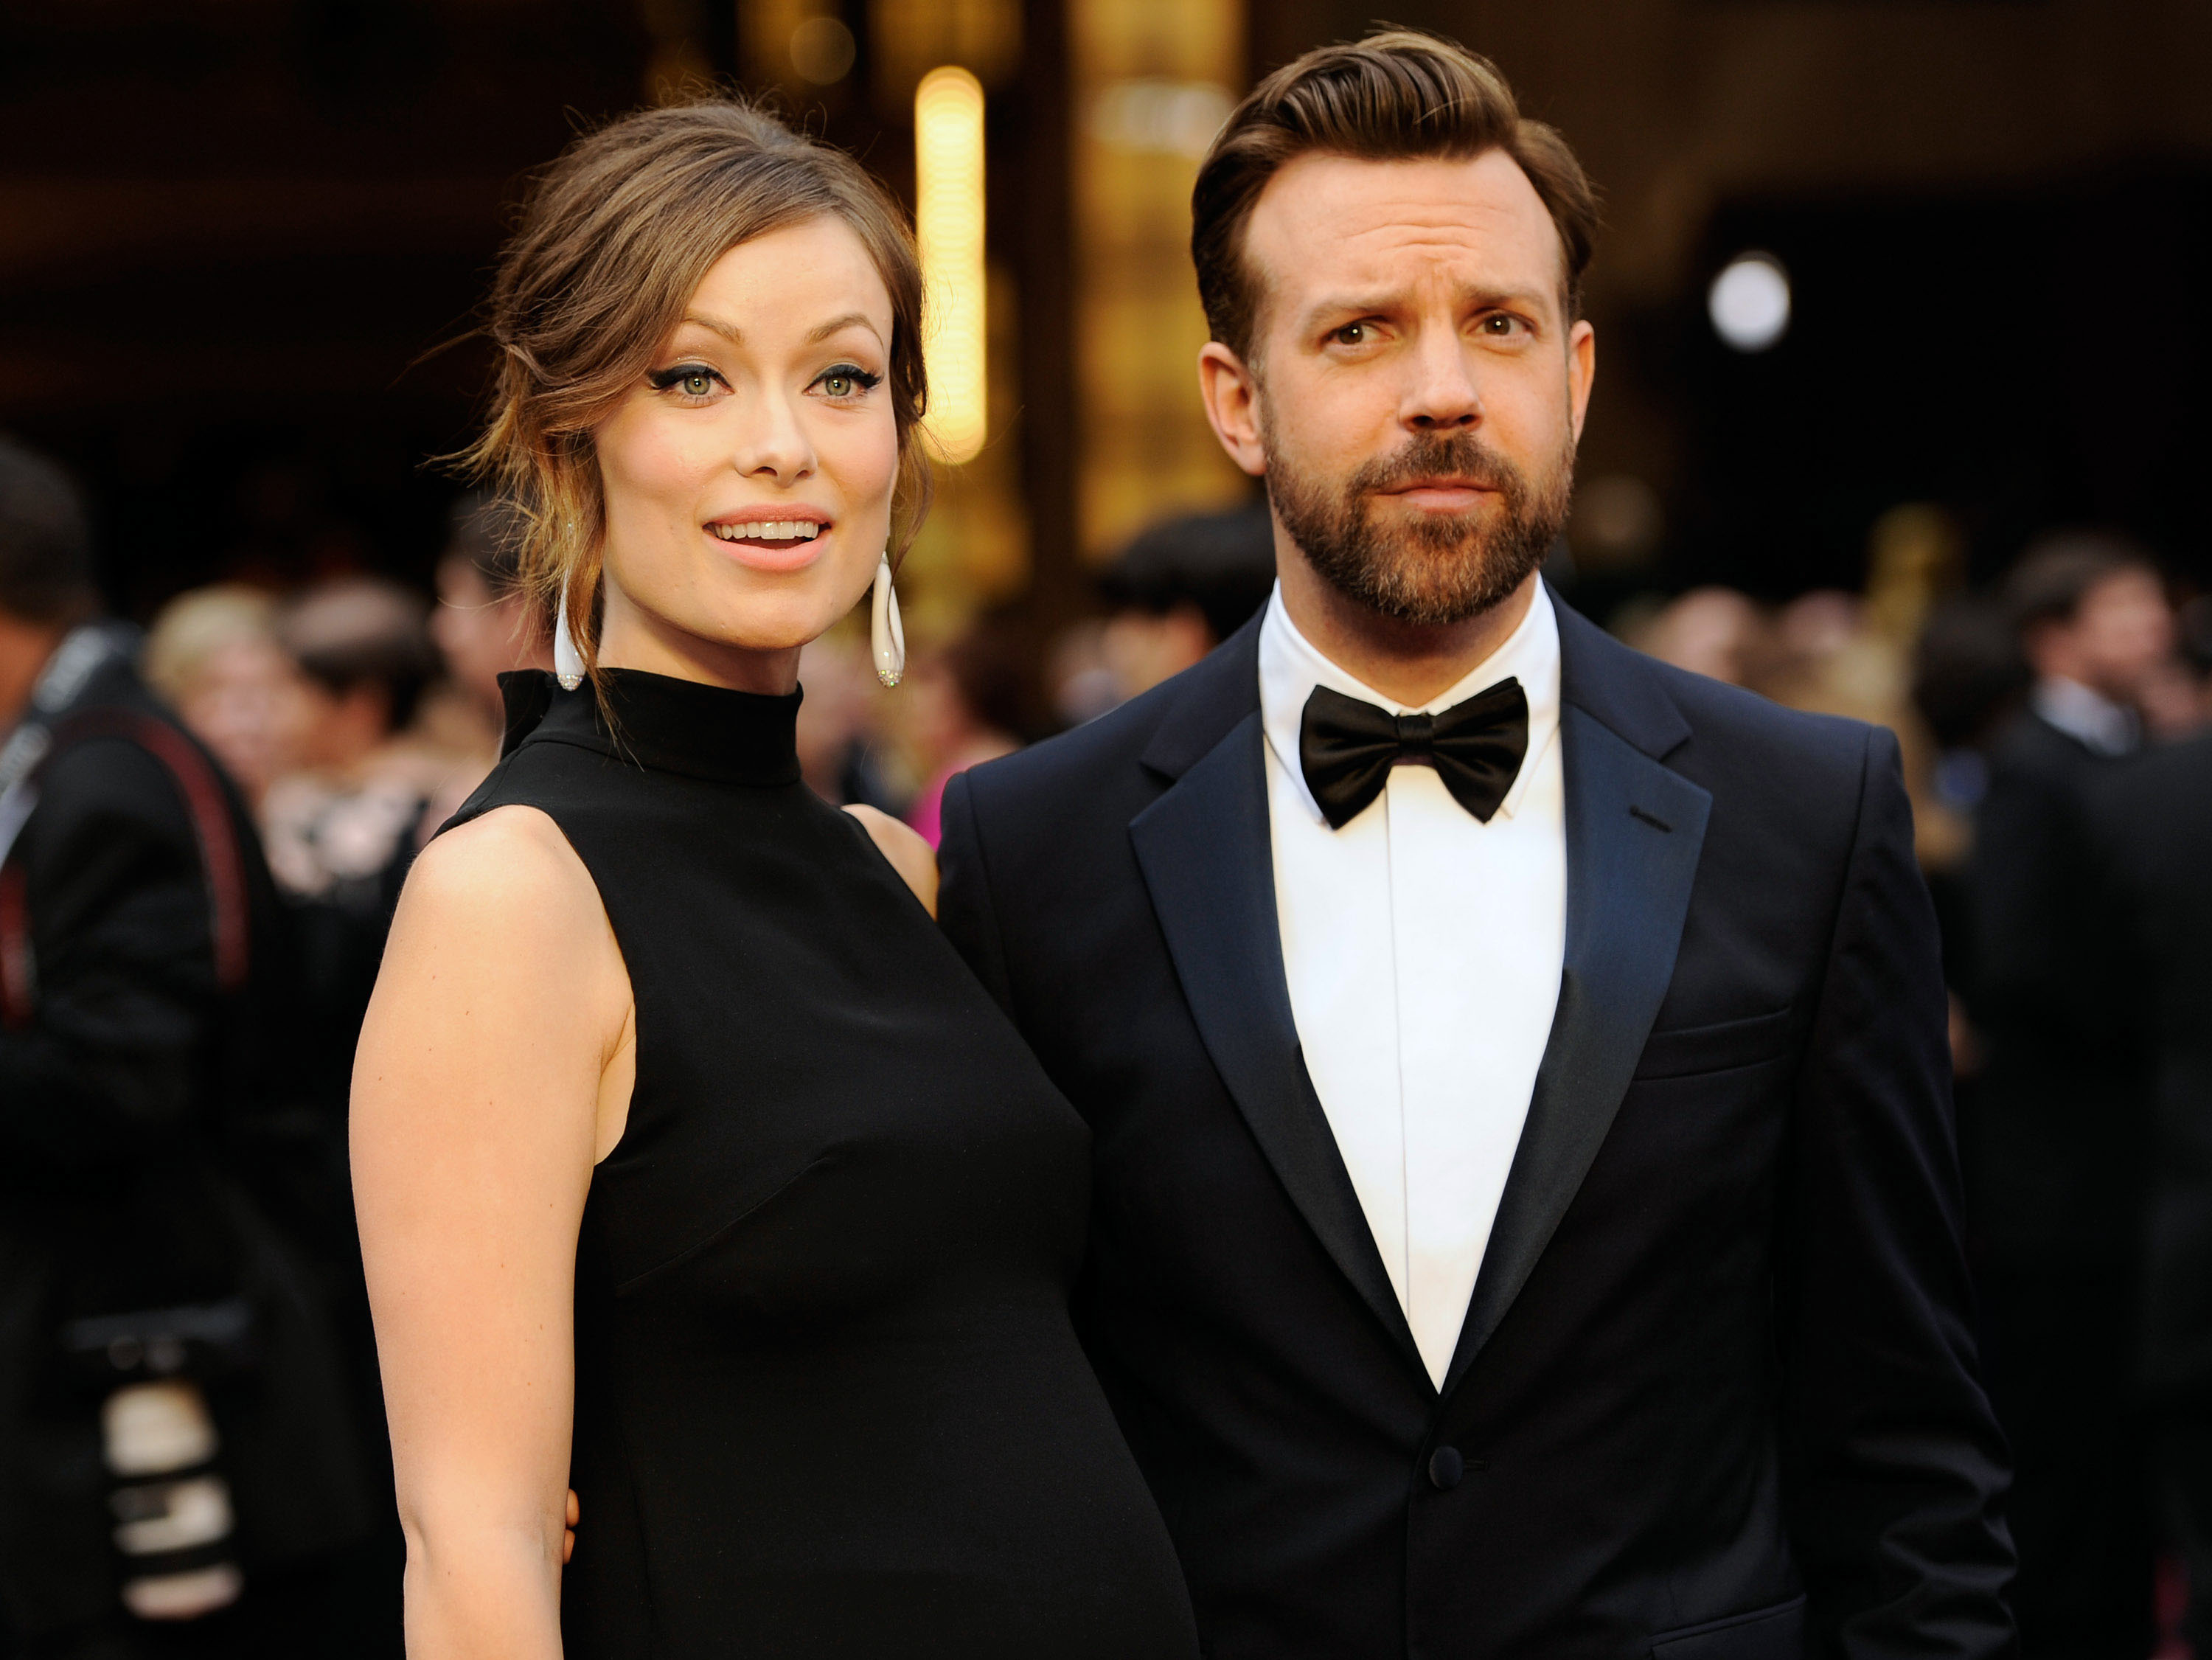 Olivia Wilde, and Jason Sudeikis arrive at the Oscars at the Dolby Theatre in Los Angeles on March 2, 2014. It's a boy for Wilde and Sudekis. A spokeswoman for the  Tron: Legacy  actress said the couple welcomed son Otis Alexander on Sunday, April 20, 2014.